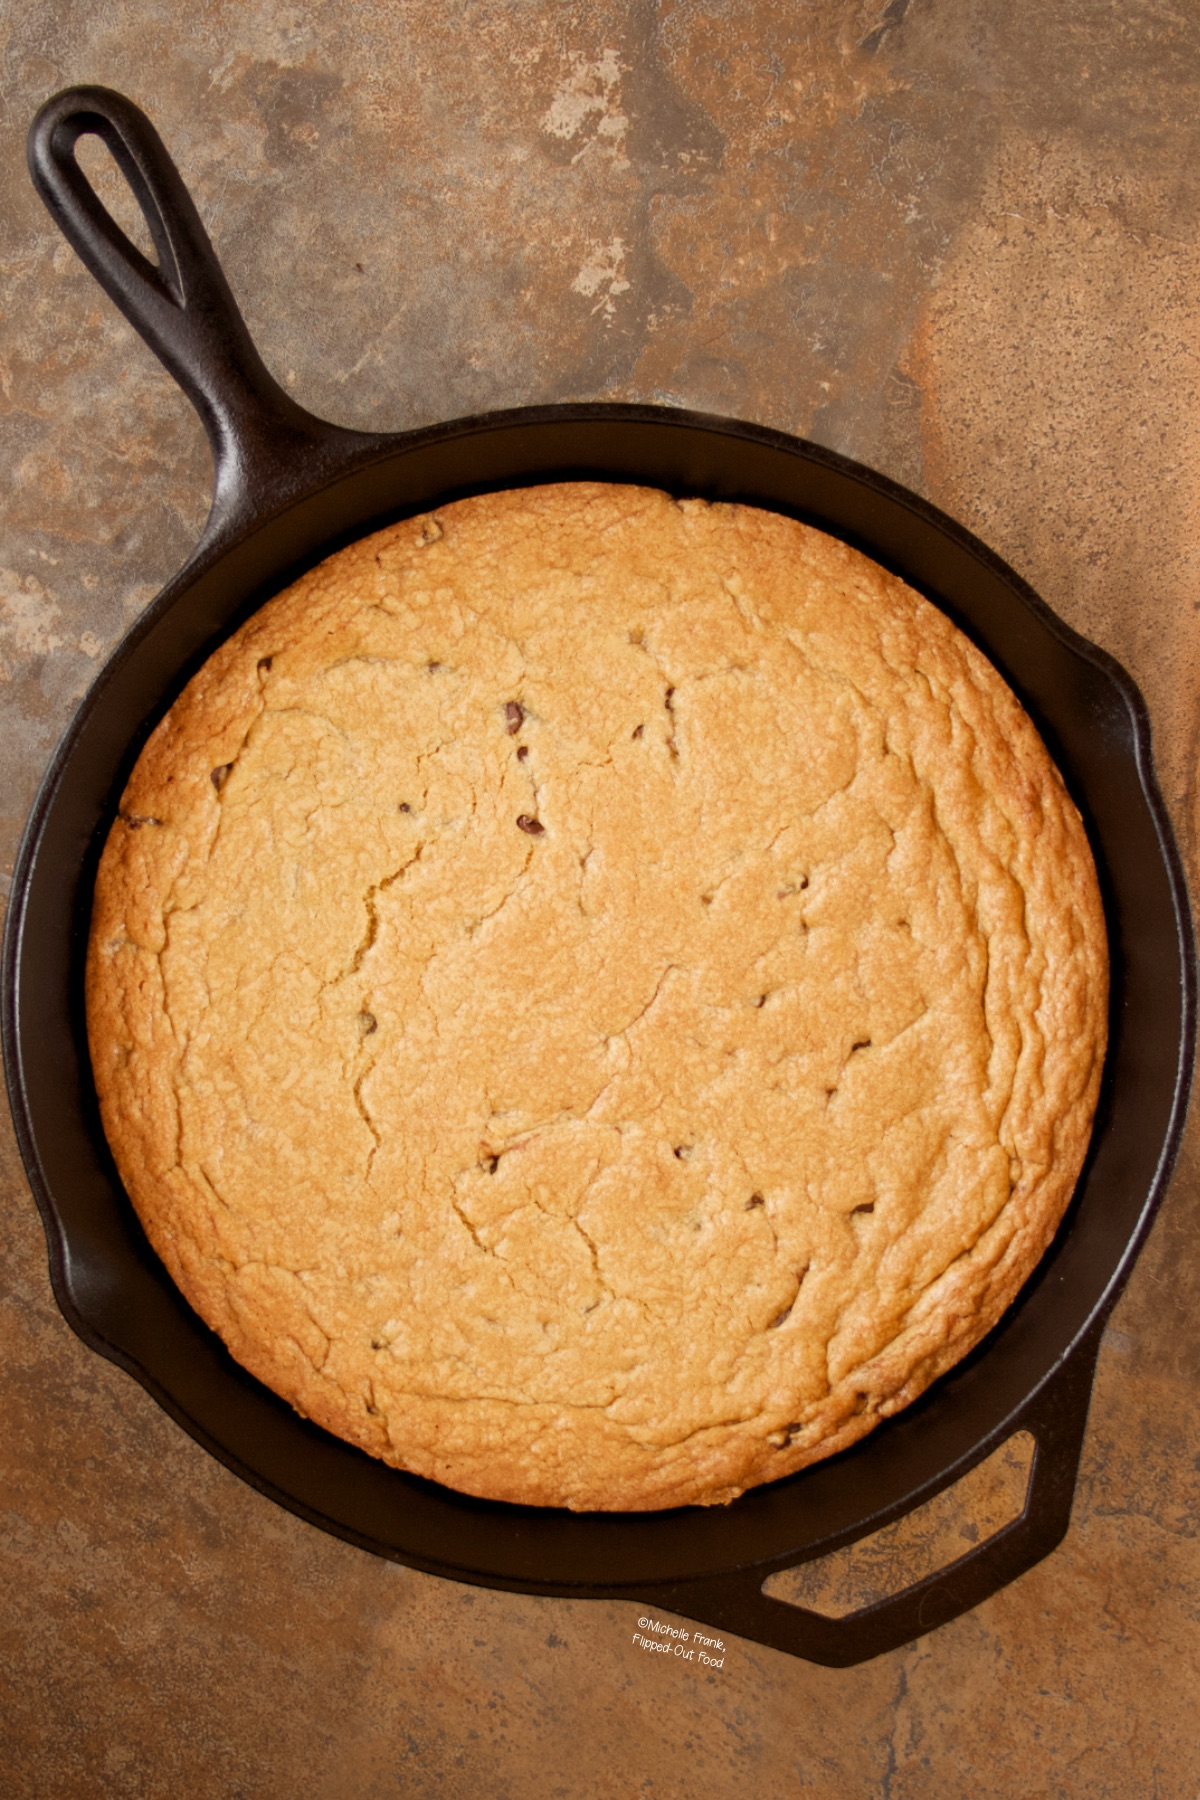 A golden-brown Cast Iron Chocolate Chip Cookie, fresh from the oven and still in its skillet.